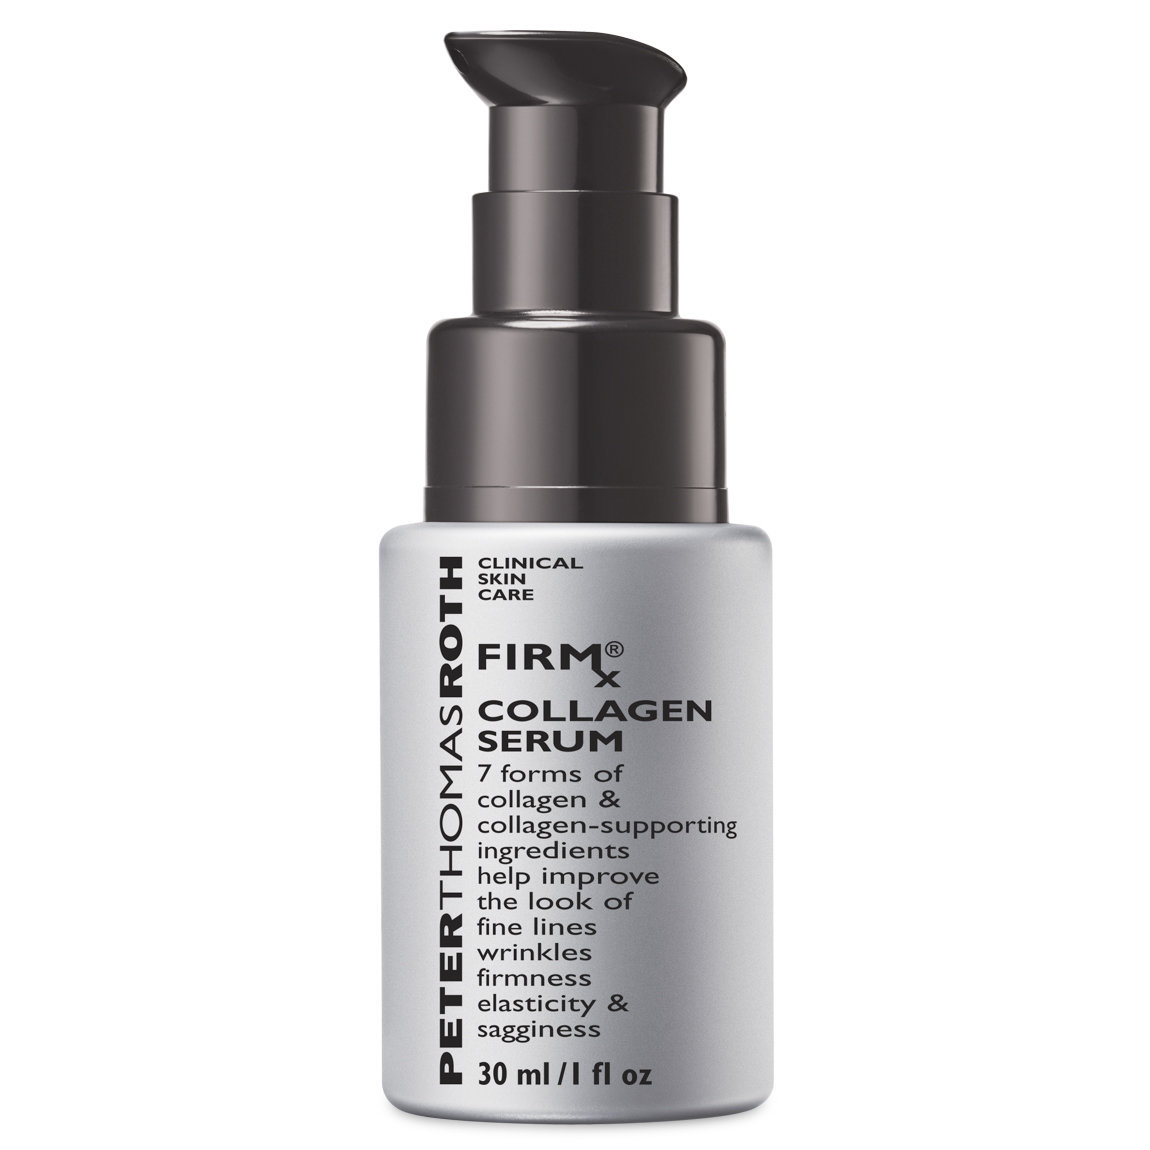 Peter Thomas Roth FIRMx Collagen Serum product swatch.